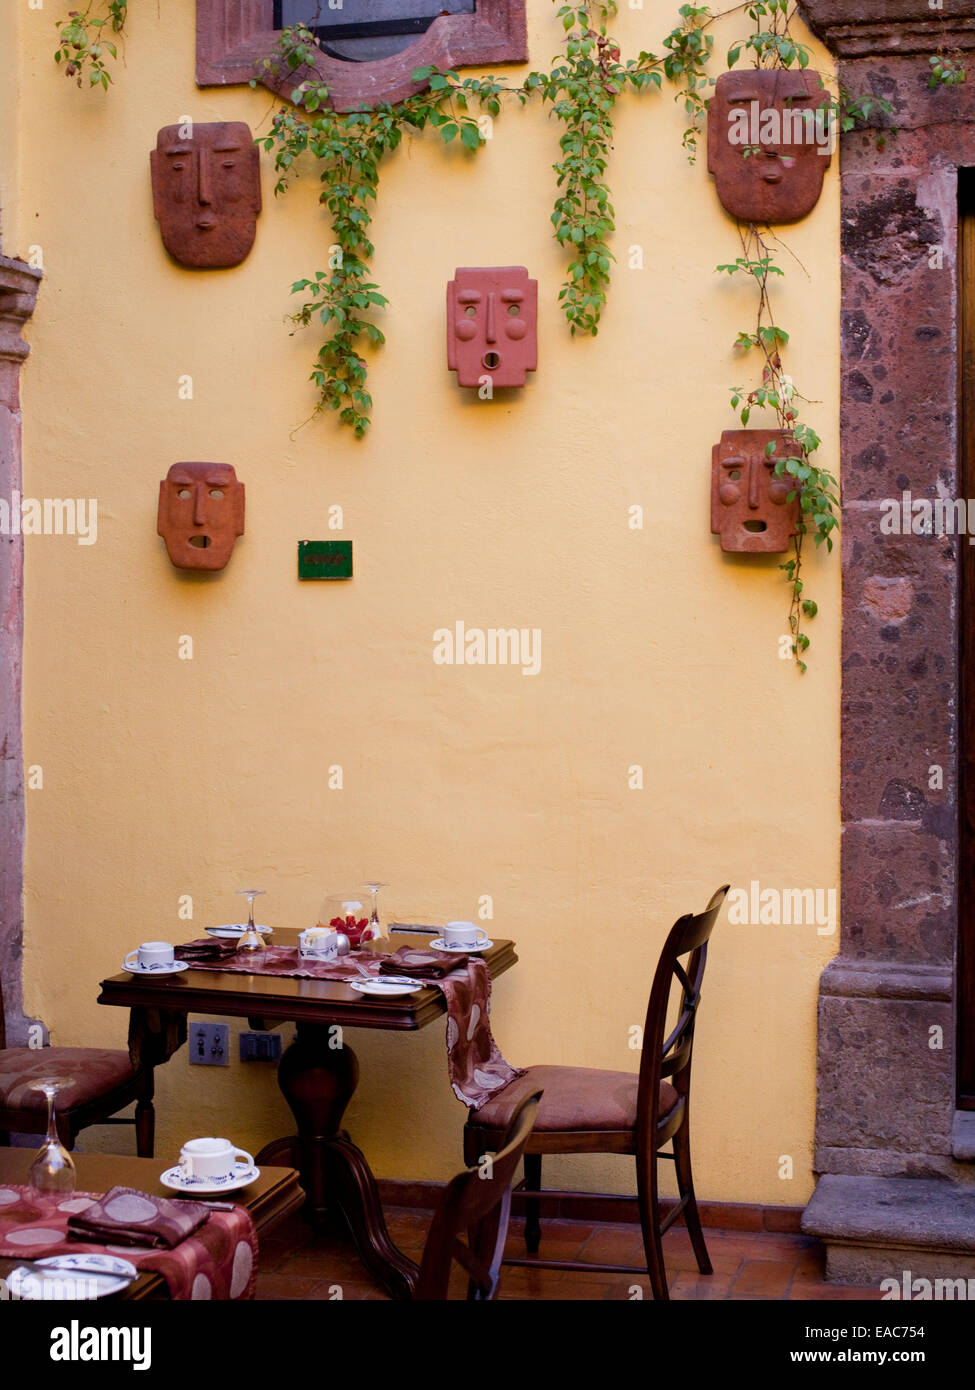 courtyard dining room in mexico with ceramic masks - Stock Image